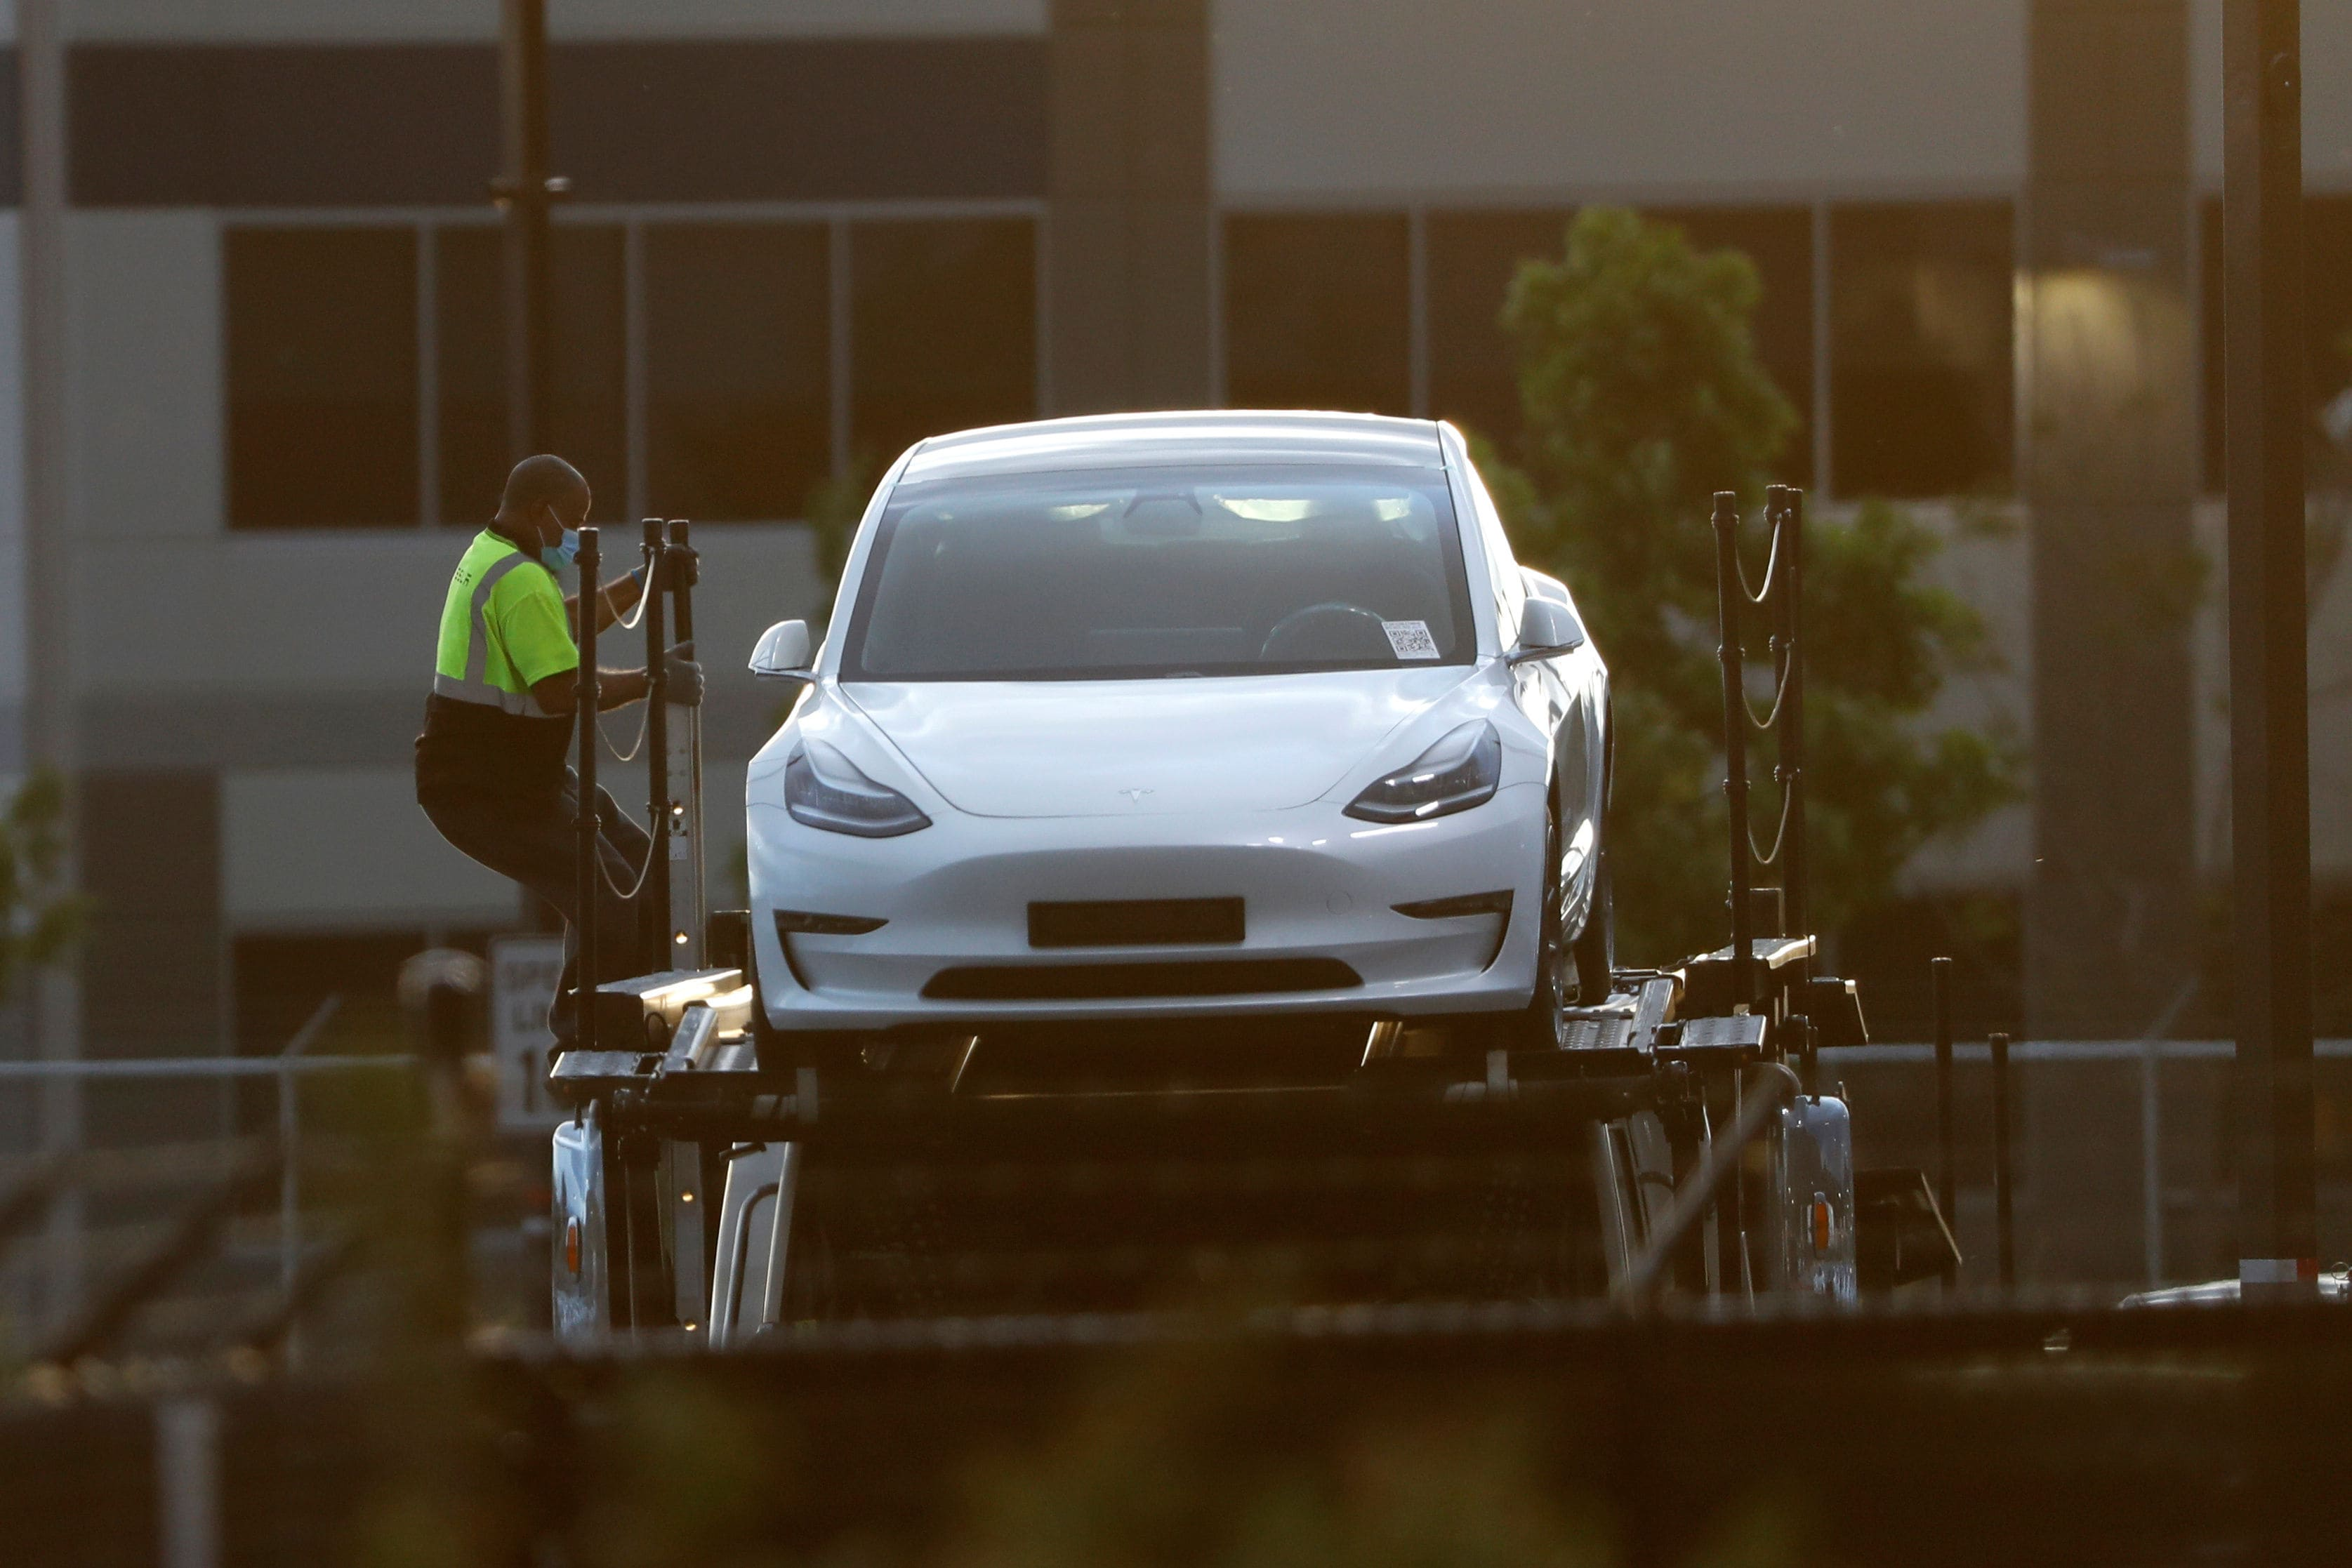 A Tesla worker can be seen descending from the top deck of a car carrier trailer carrying Tesla electric vehicles at its primary factory after production resumed. CEO Elon Musk has openly acknowledged that he is risking arrest for himself and his employees by defying orders to remain shut. (REUTERS)